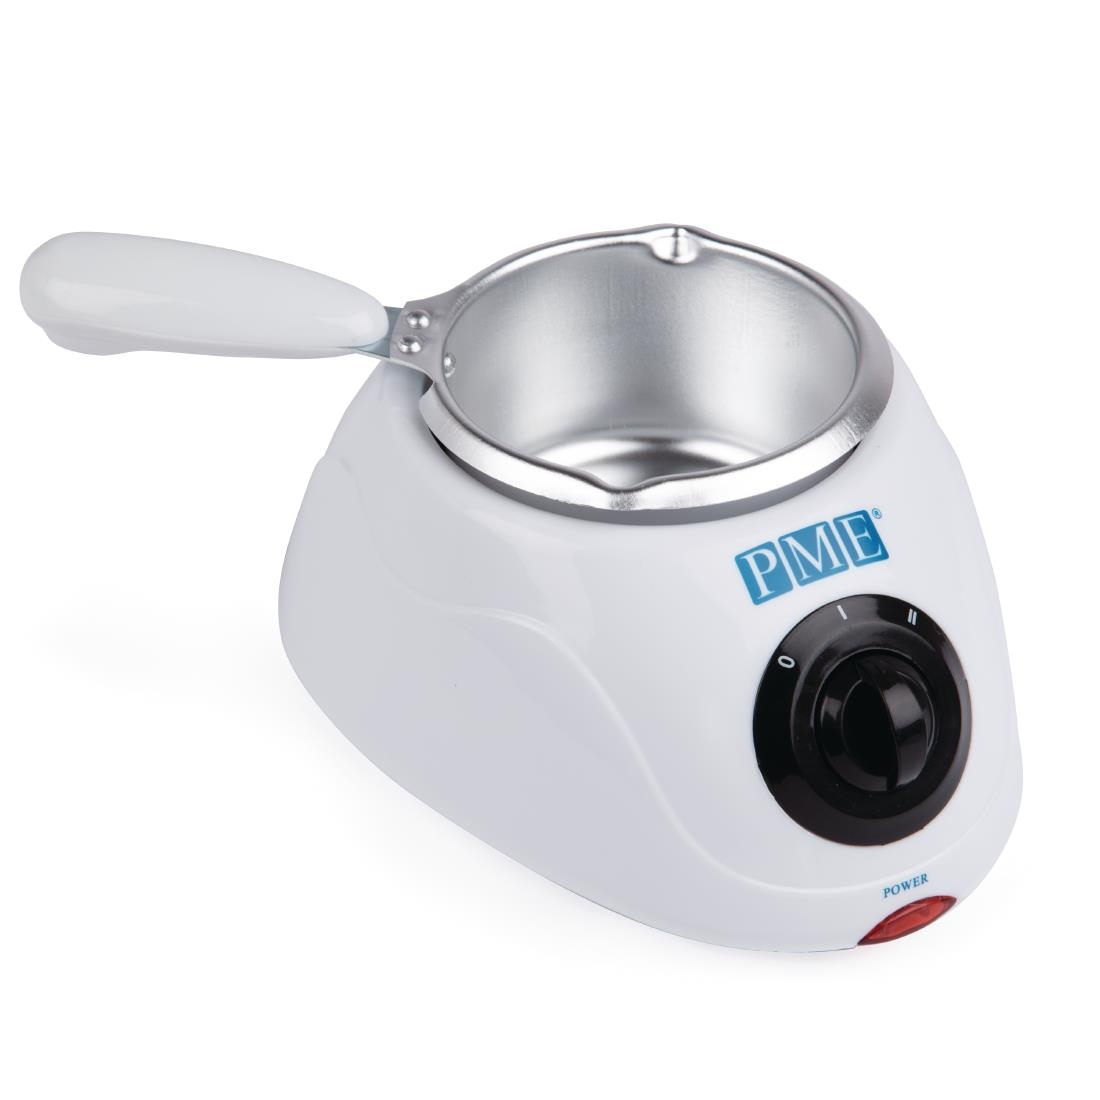 PME Electric Chocolate Melting Pot - GL227 - Buy Online at Nisbets